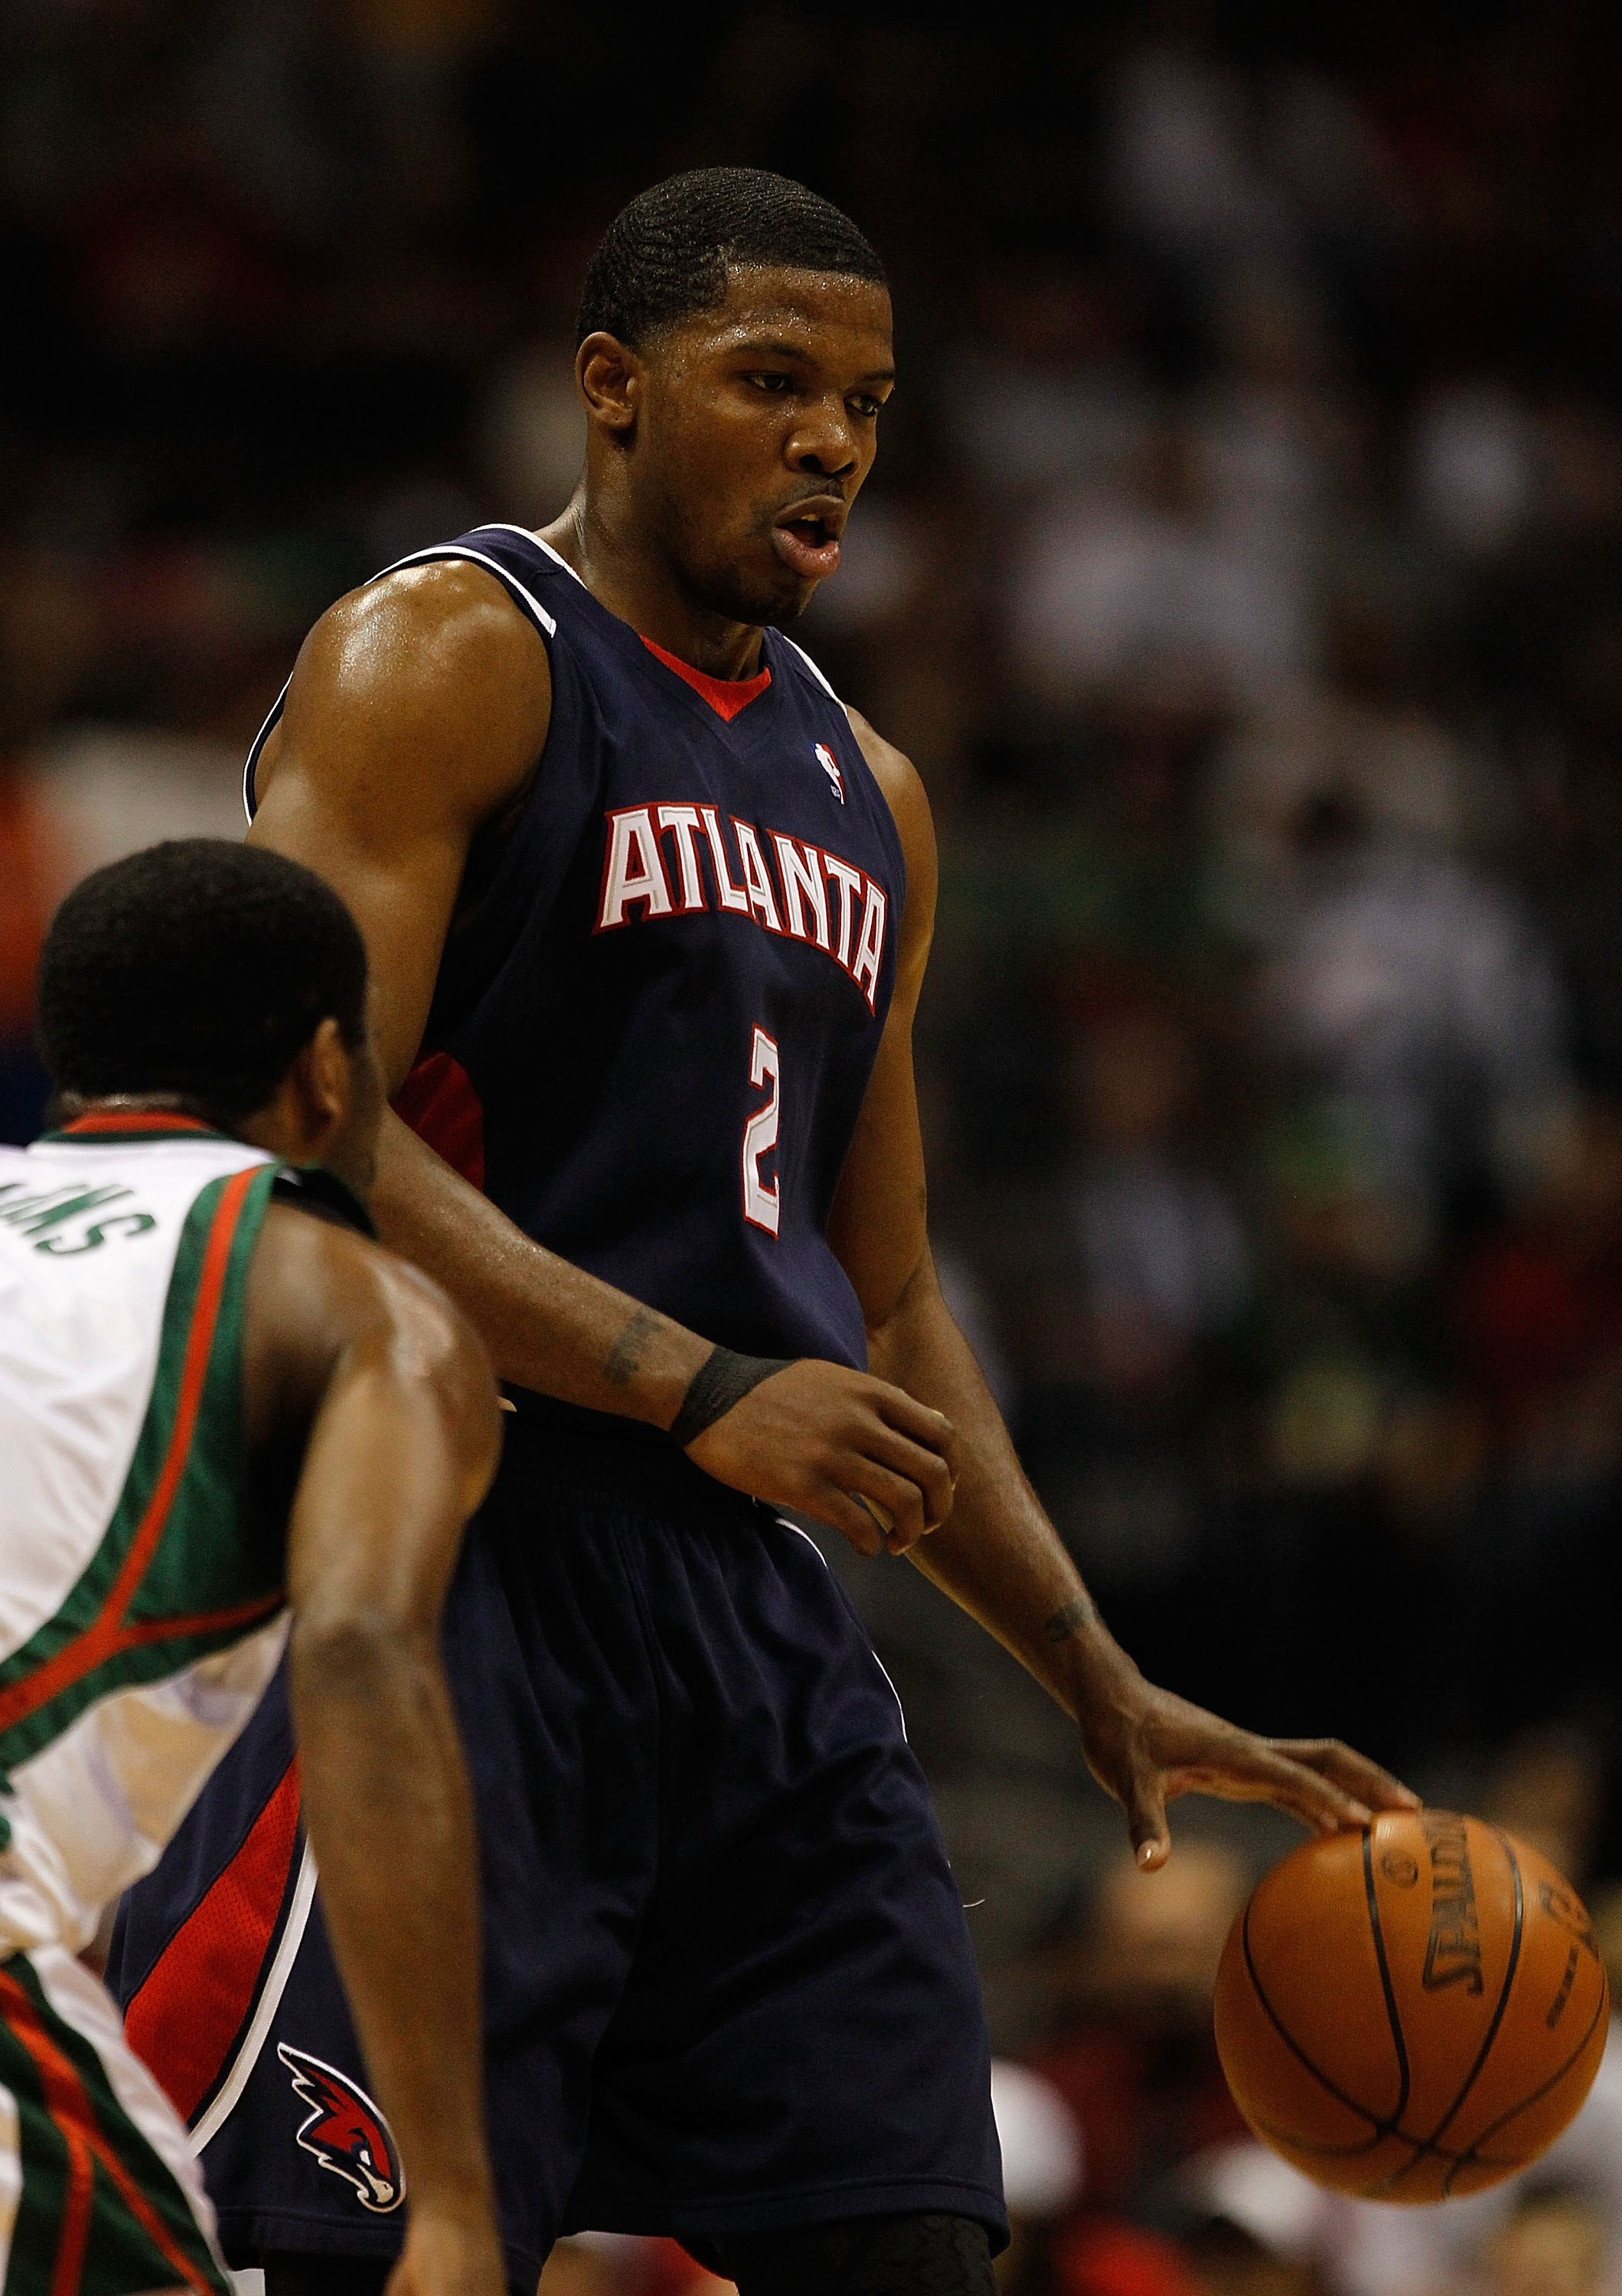 MILWAUKEE - APRIL 30: Joe Johnson #2 of the Atlanta Hawks dribbles with ball agaiunst the Milwaukee Bucks in Game Six of the Eastern Conference Quarterfinals during the 2010 NBA Playoffs at the Bradley Center on April 30, 2010 in Milwaukee, Wisconsin. The